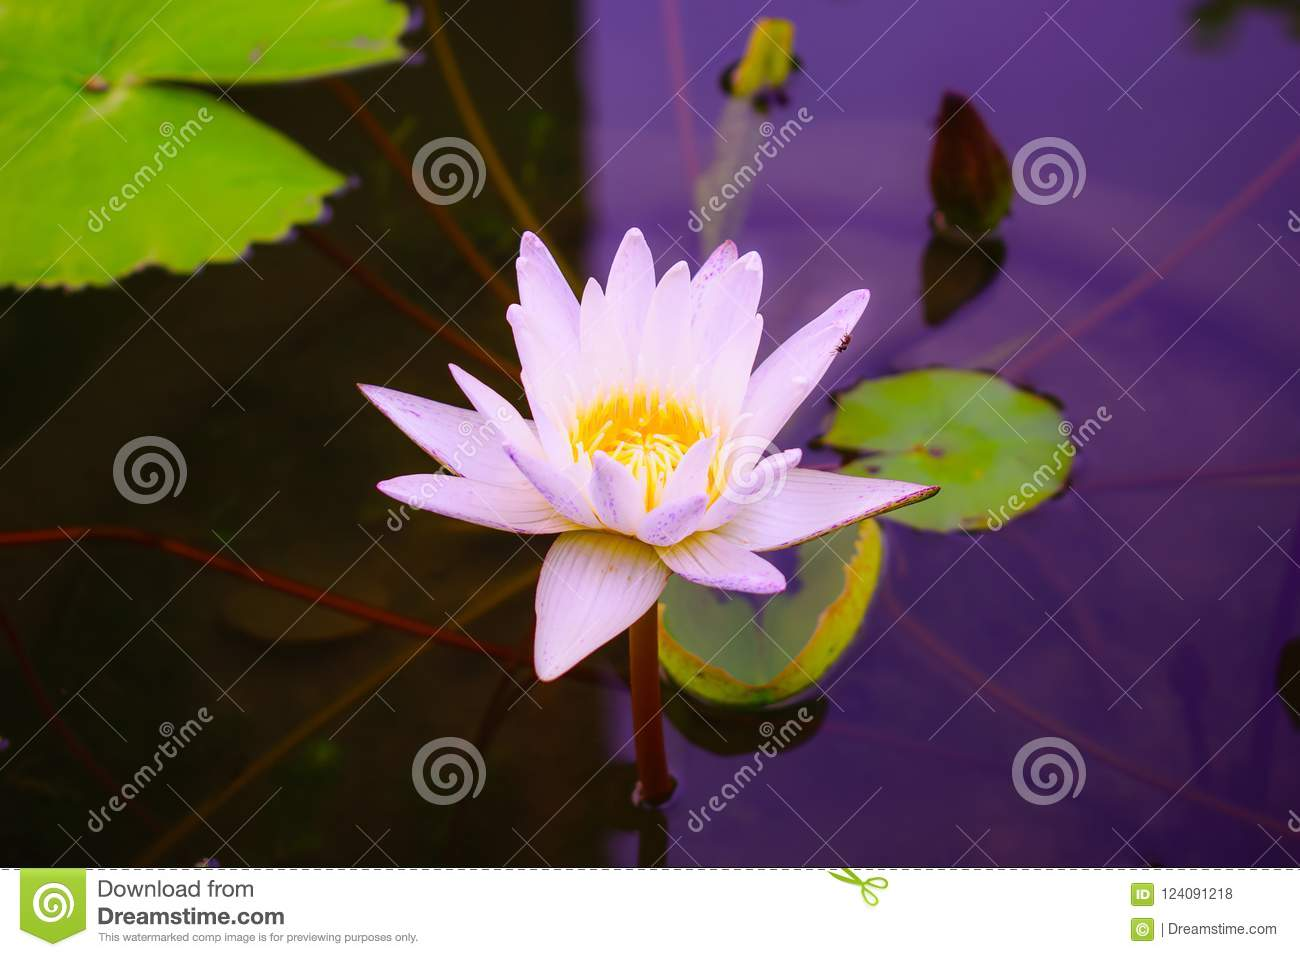 Beautiful White Lotus Flower With Green Leaf Stock Photo Image Of